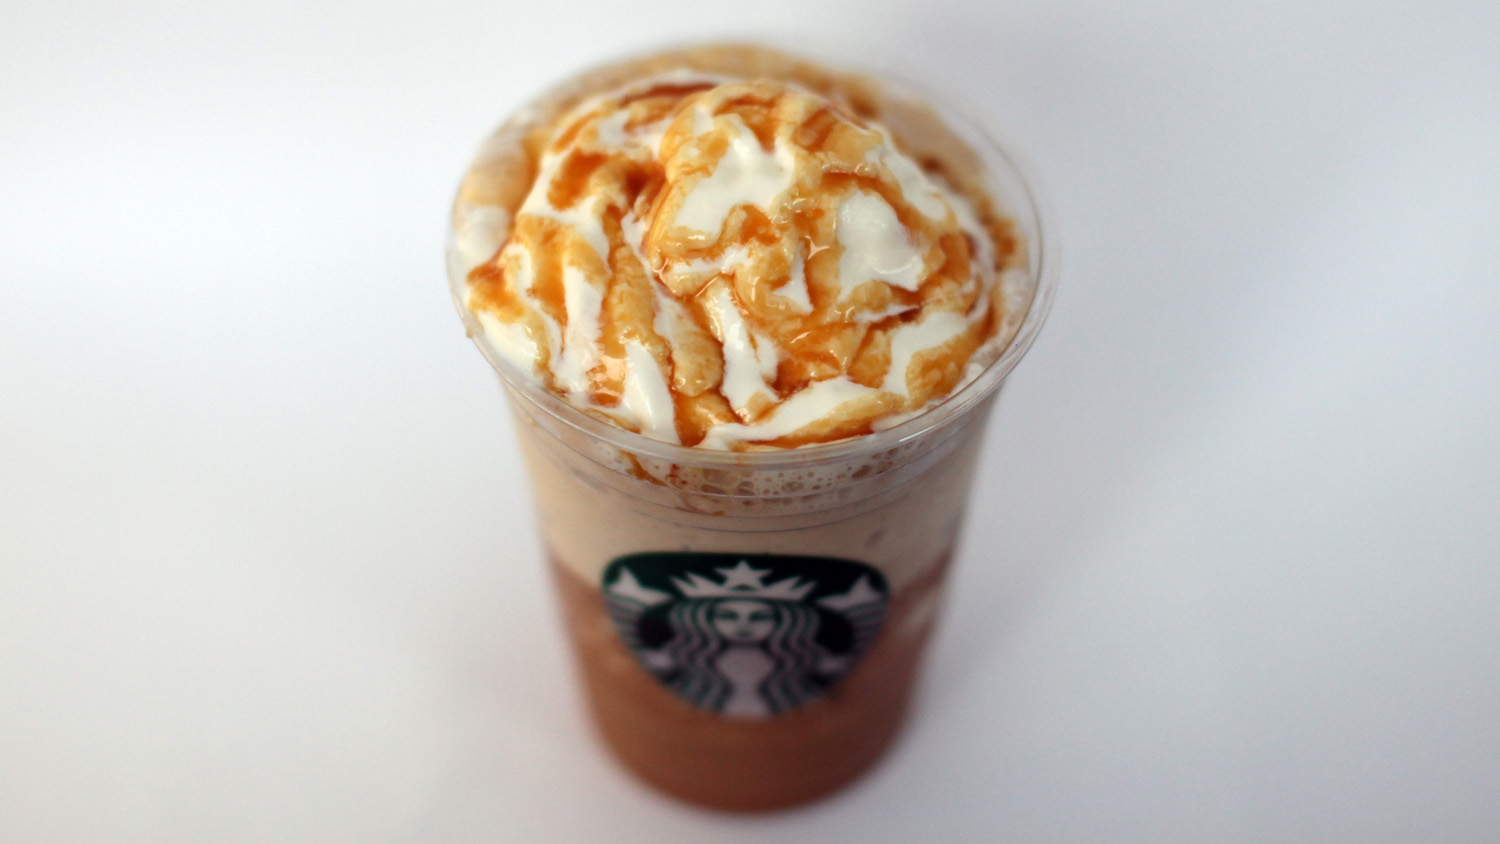 starbucks-sriracha-frappuccino-FT-Blog0417.jpg